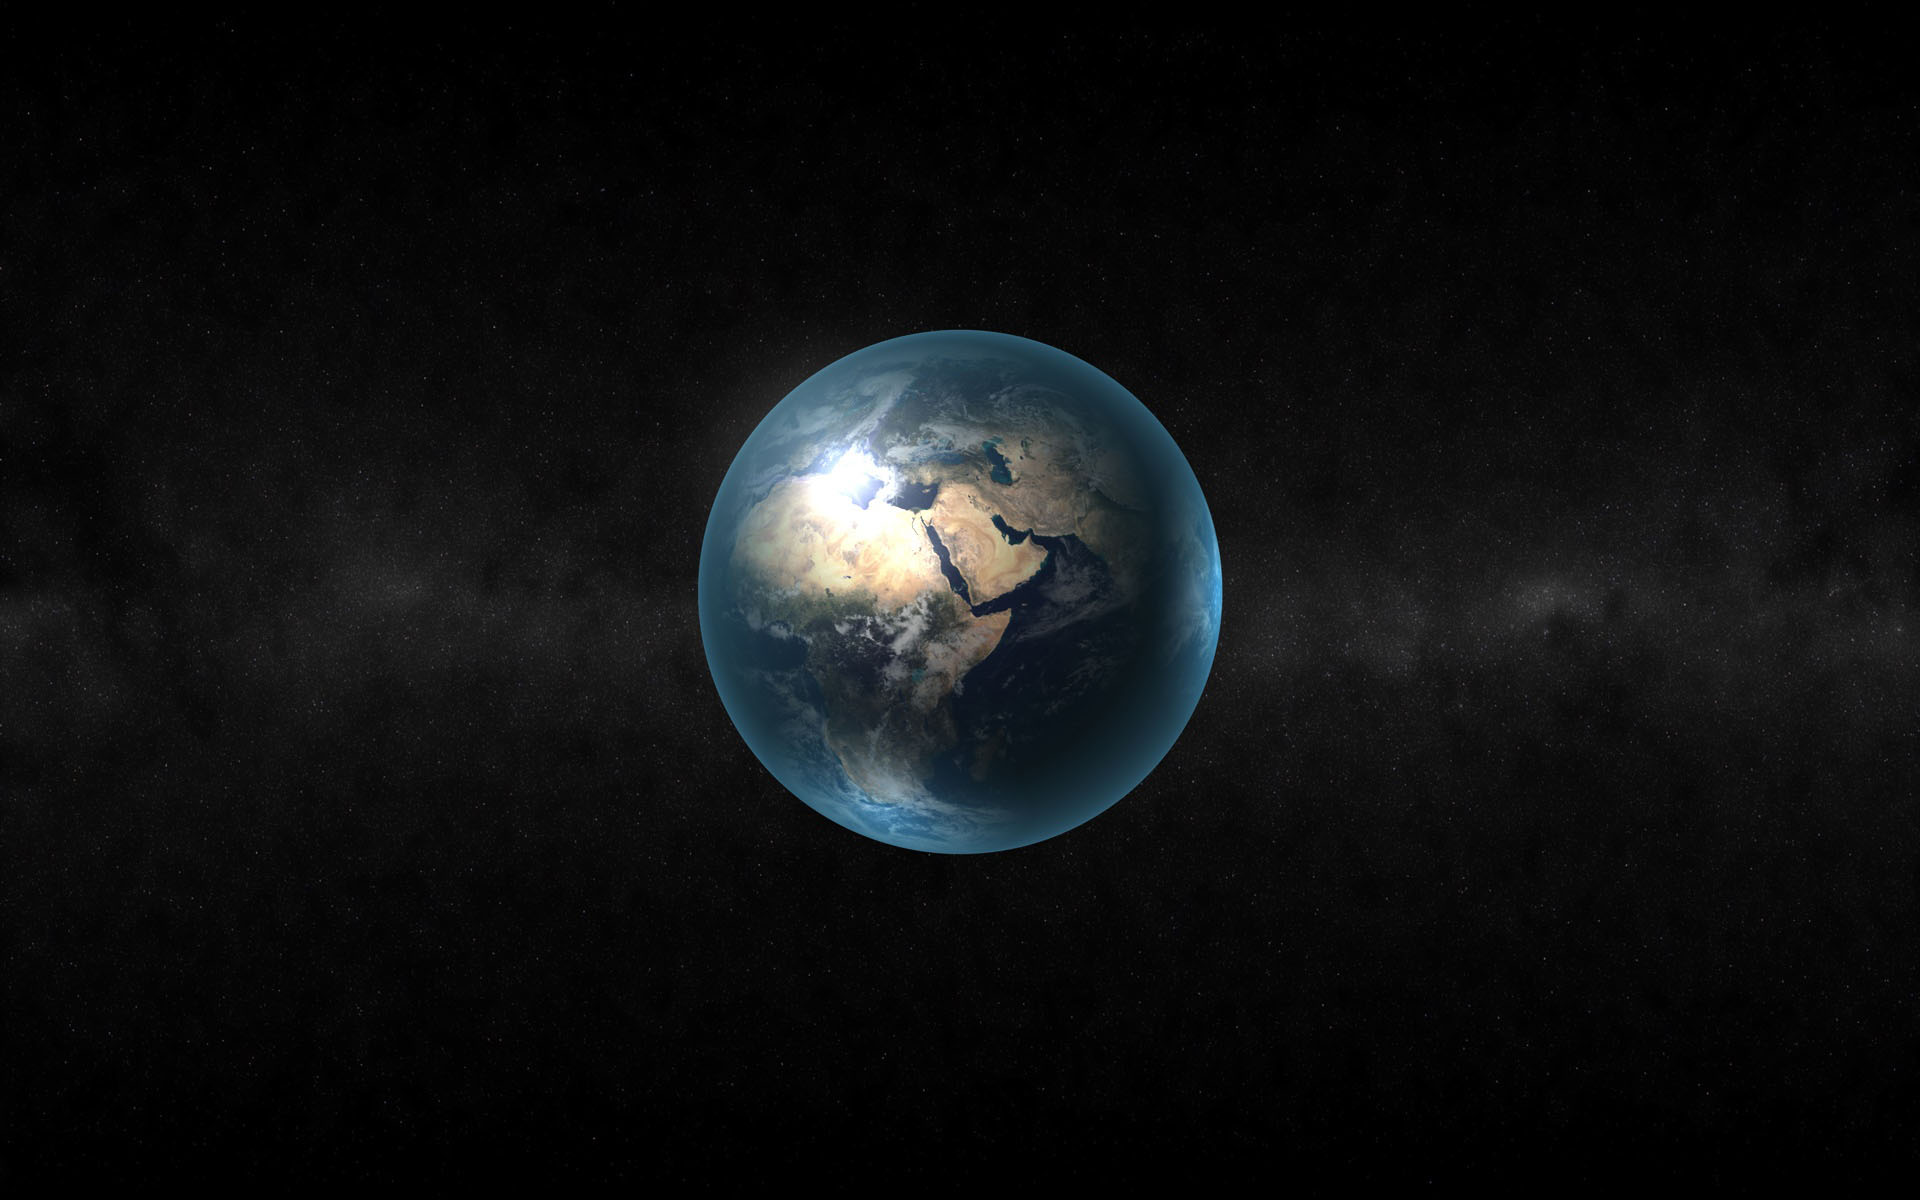 space wallpapers nasa technology science earth photocombo 1920x1200